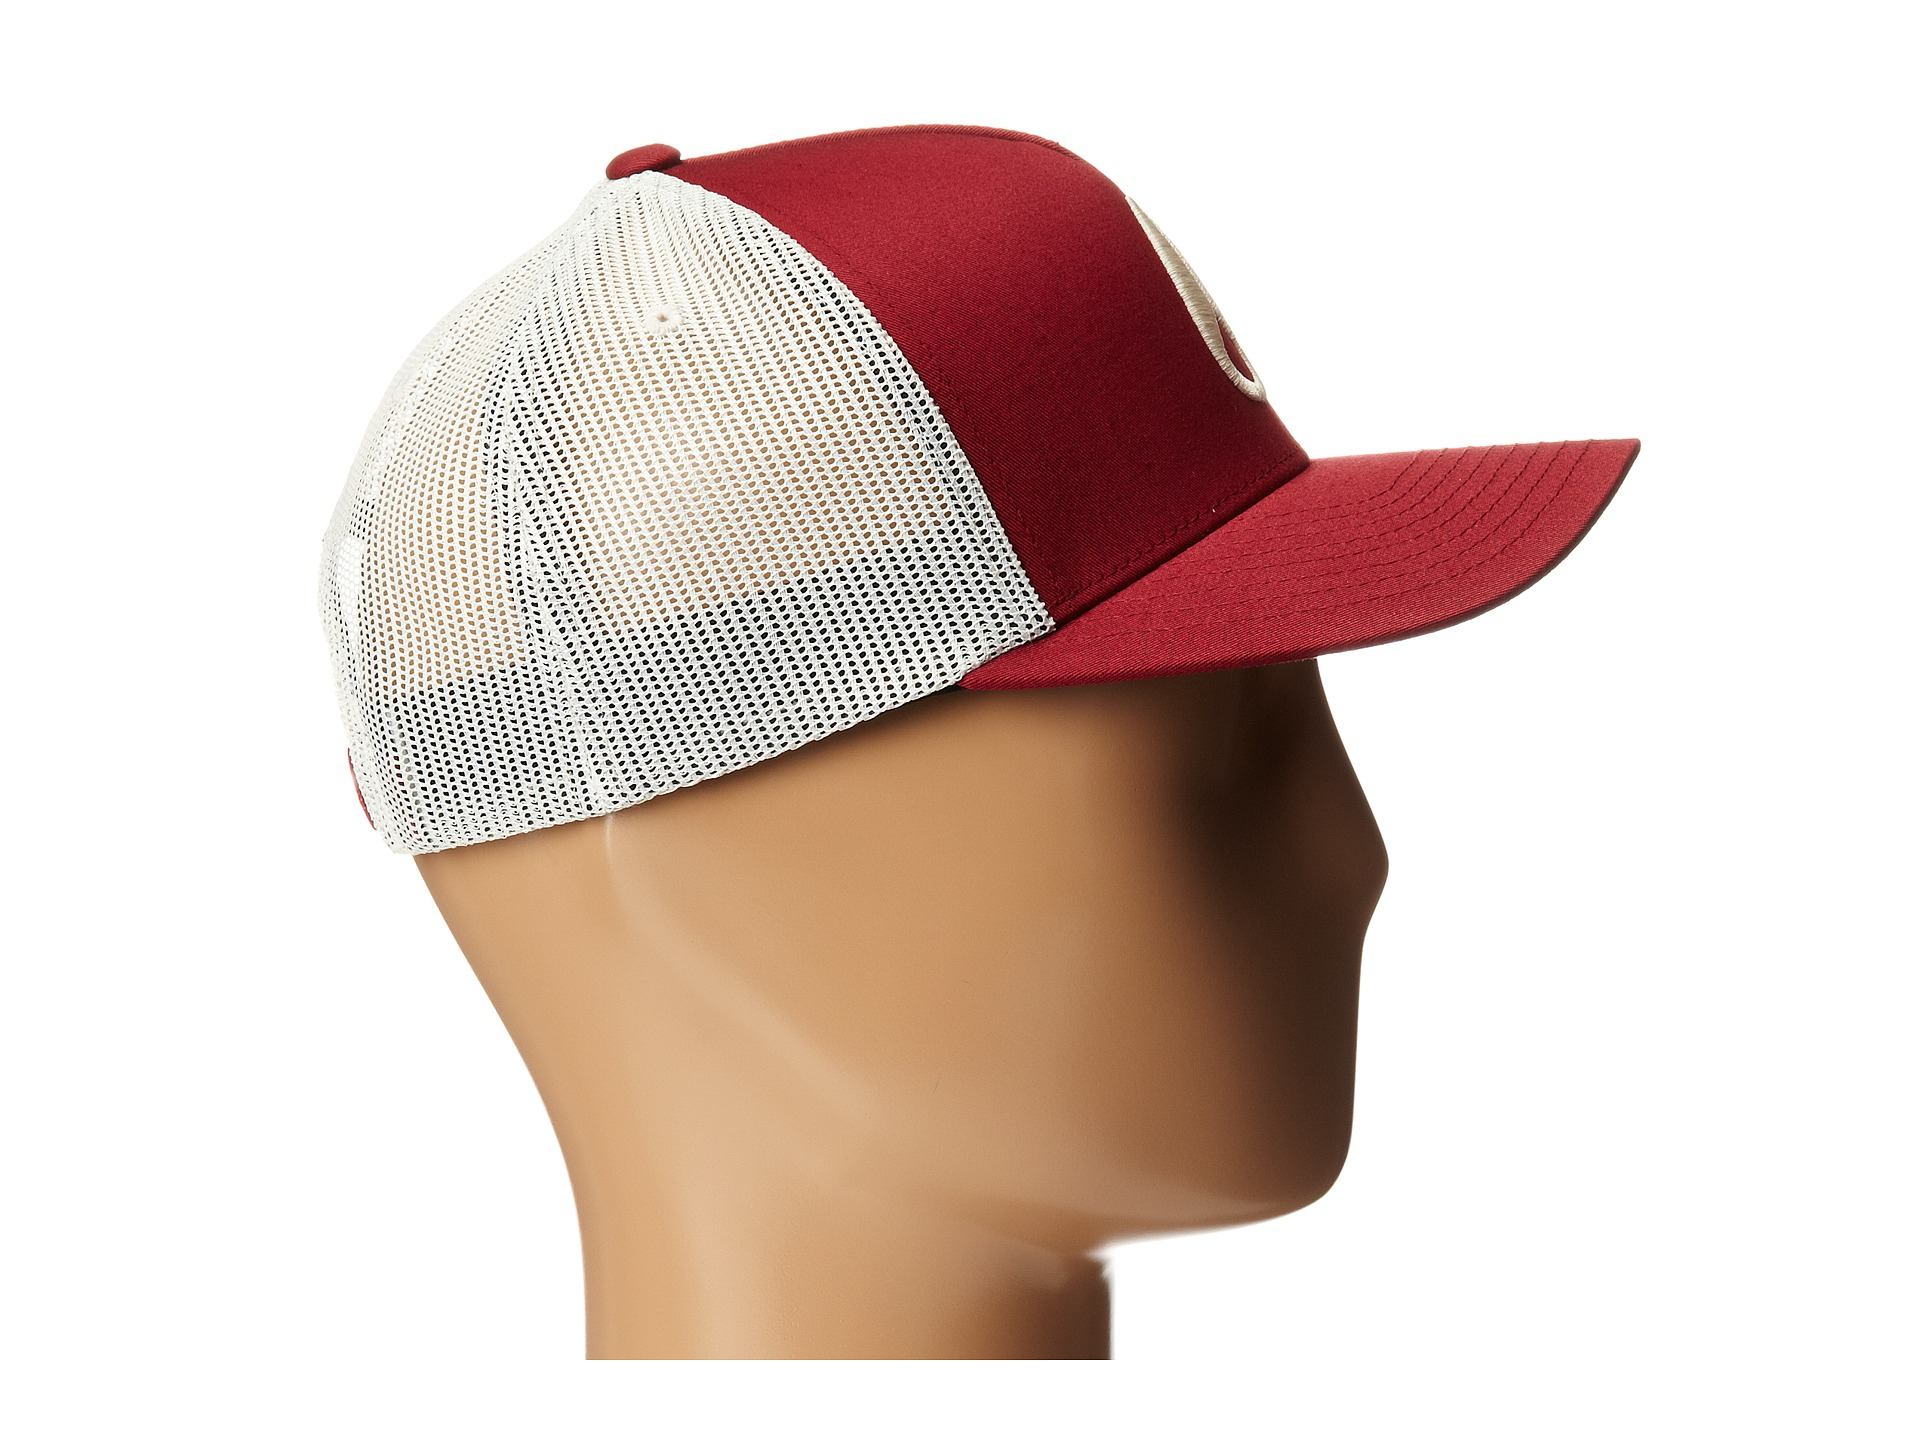 aabcf7f6 Nixon Iconed Trucker Hat in Red - Lyst